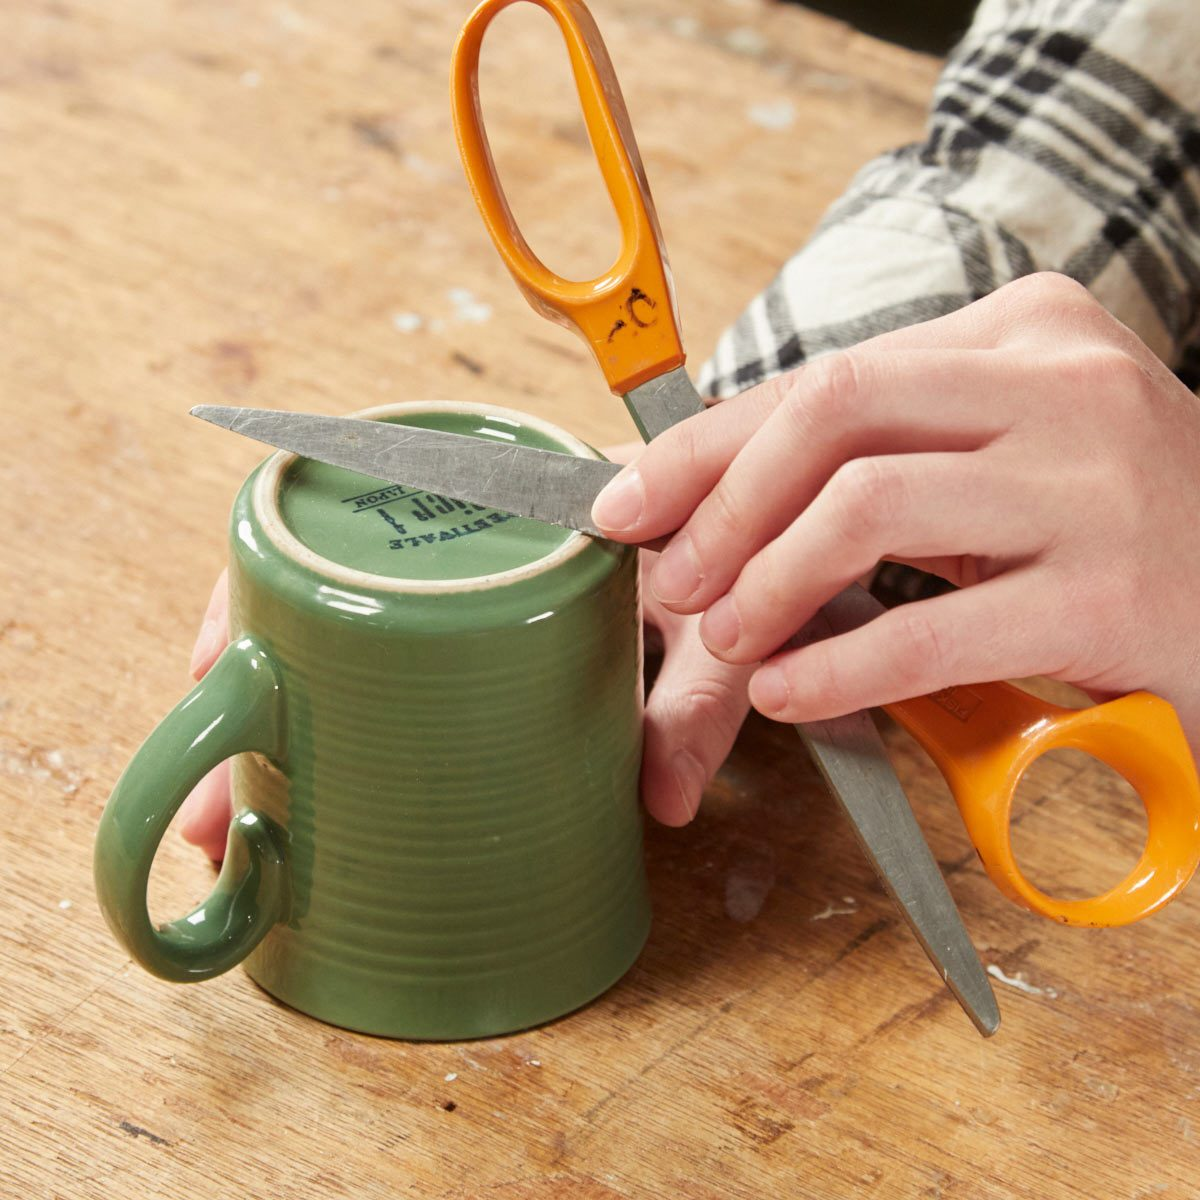 HH sharpening scissor blades on coffee mug